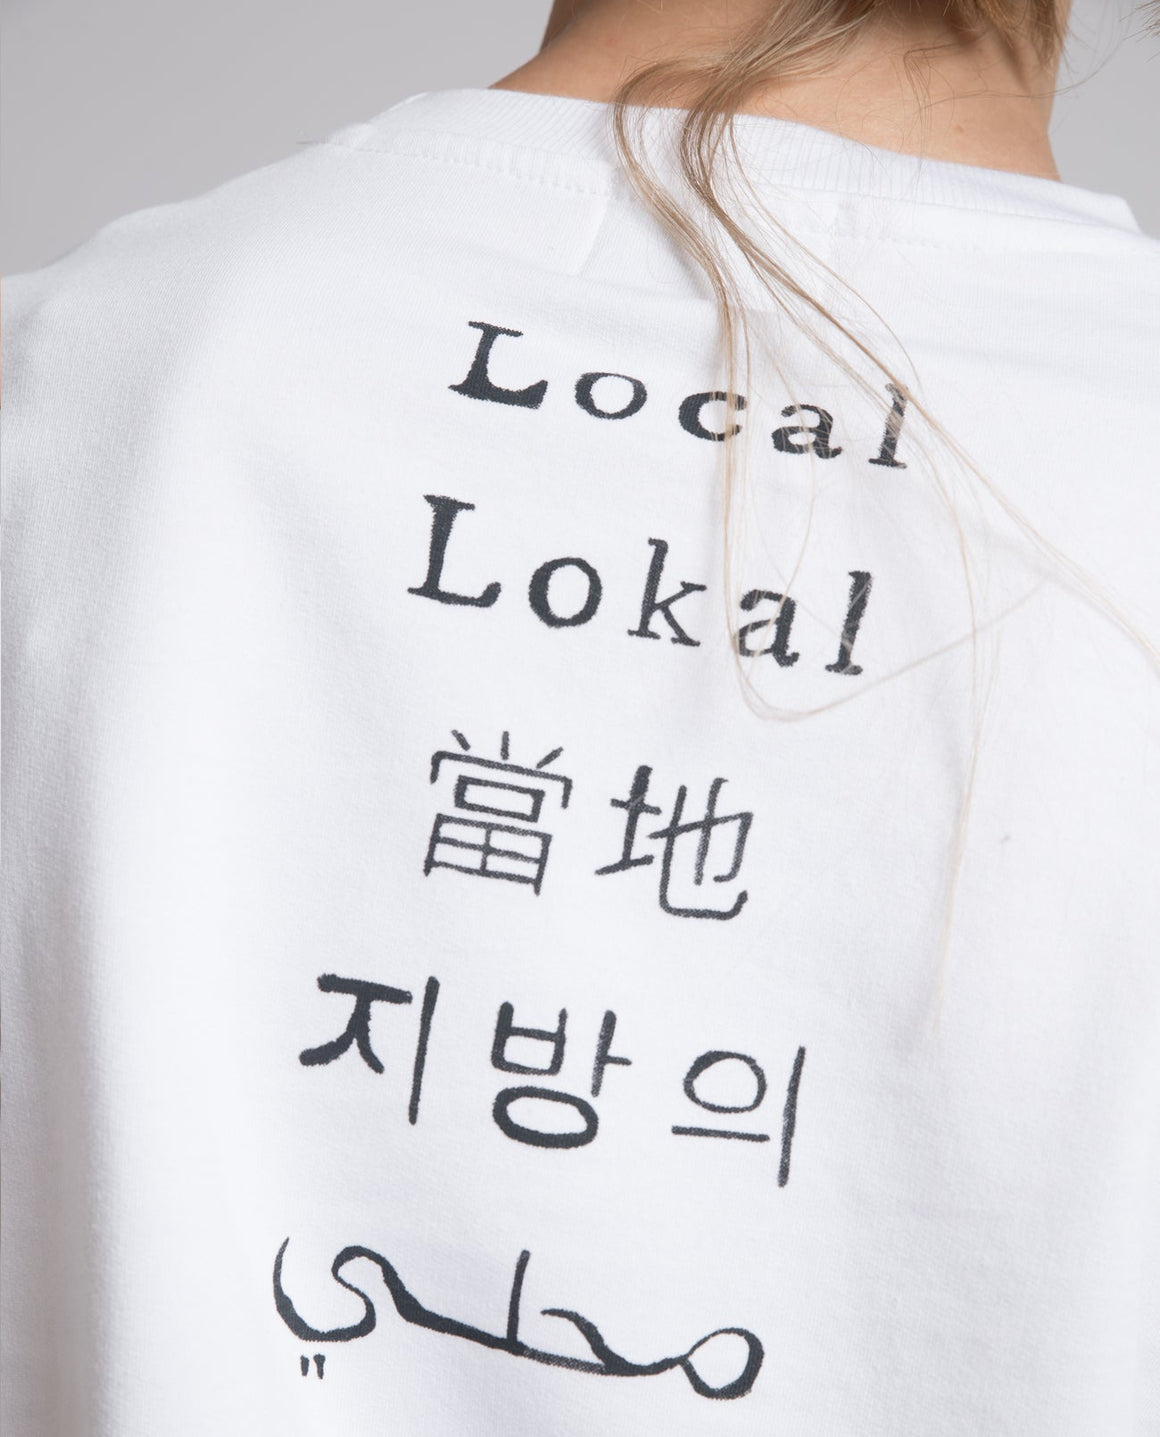 Logo Sweatshirt White - Local Pattern